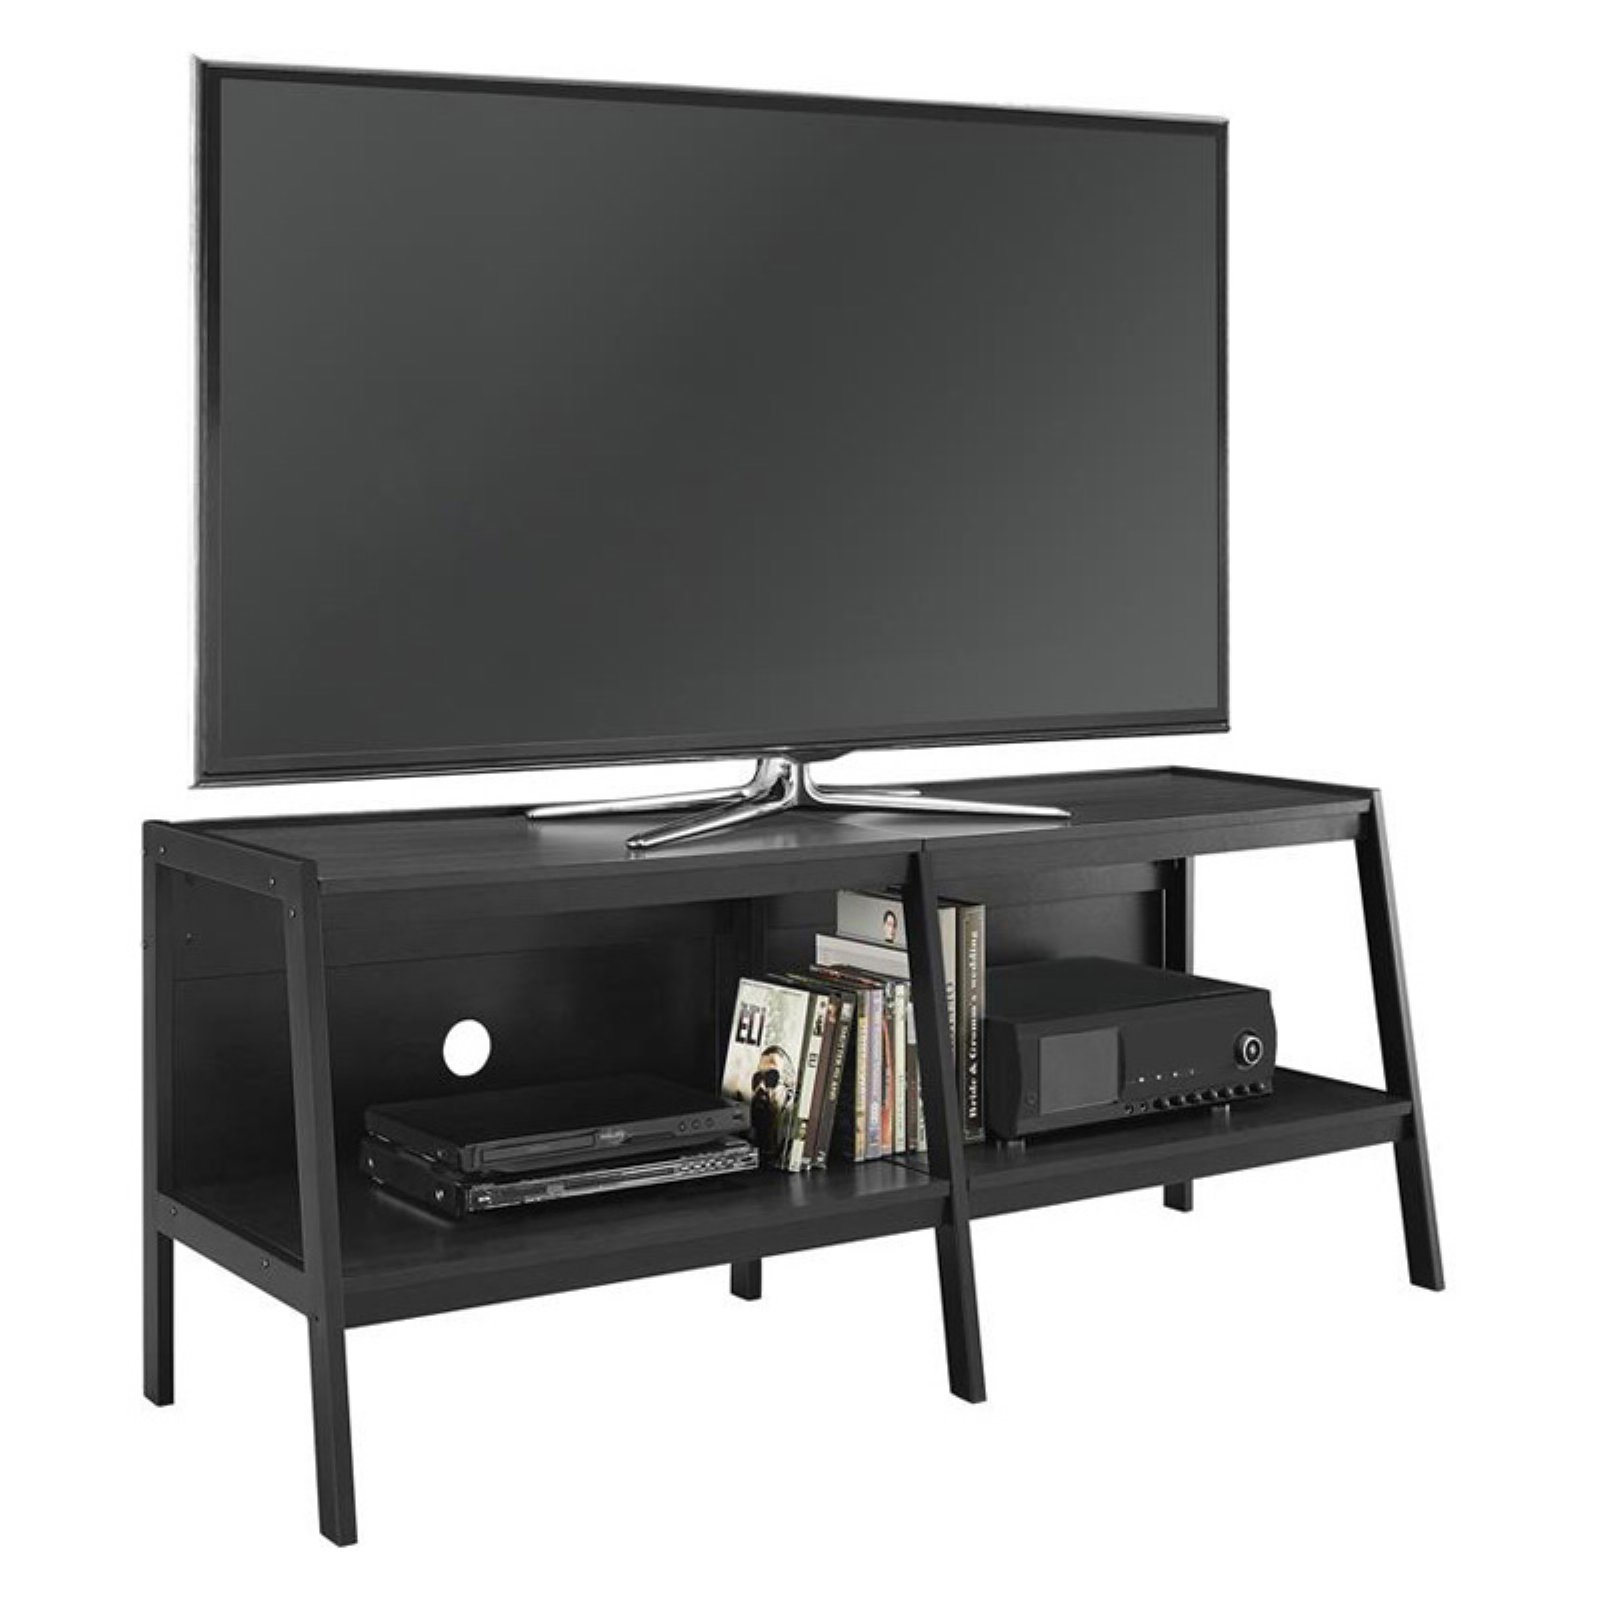 "Ameriwood Home Lawrence 60"" Ladder TV Stand, Black"